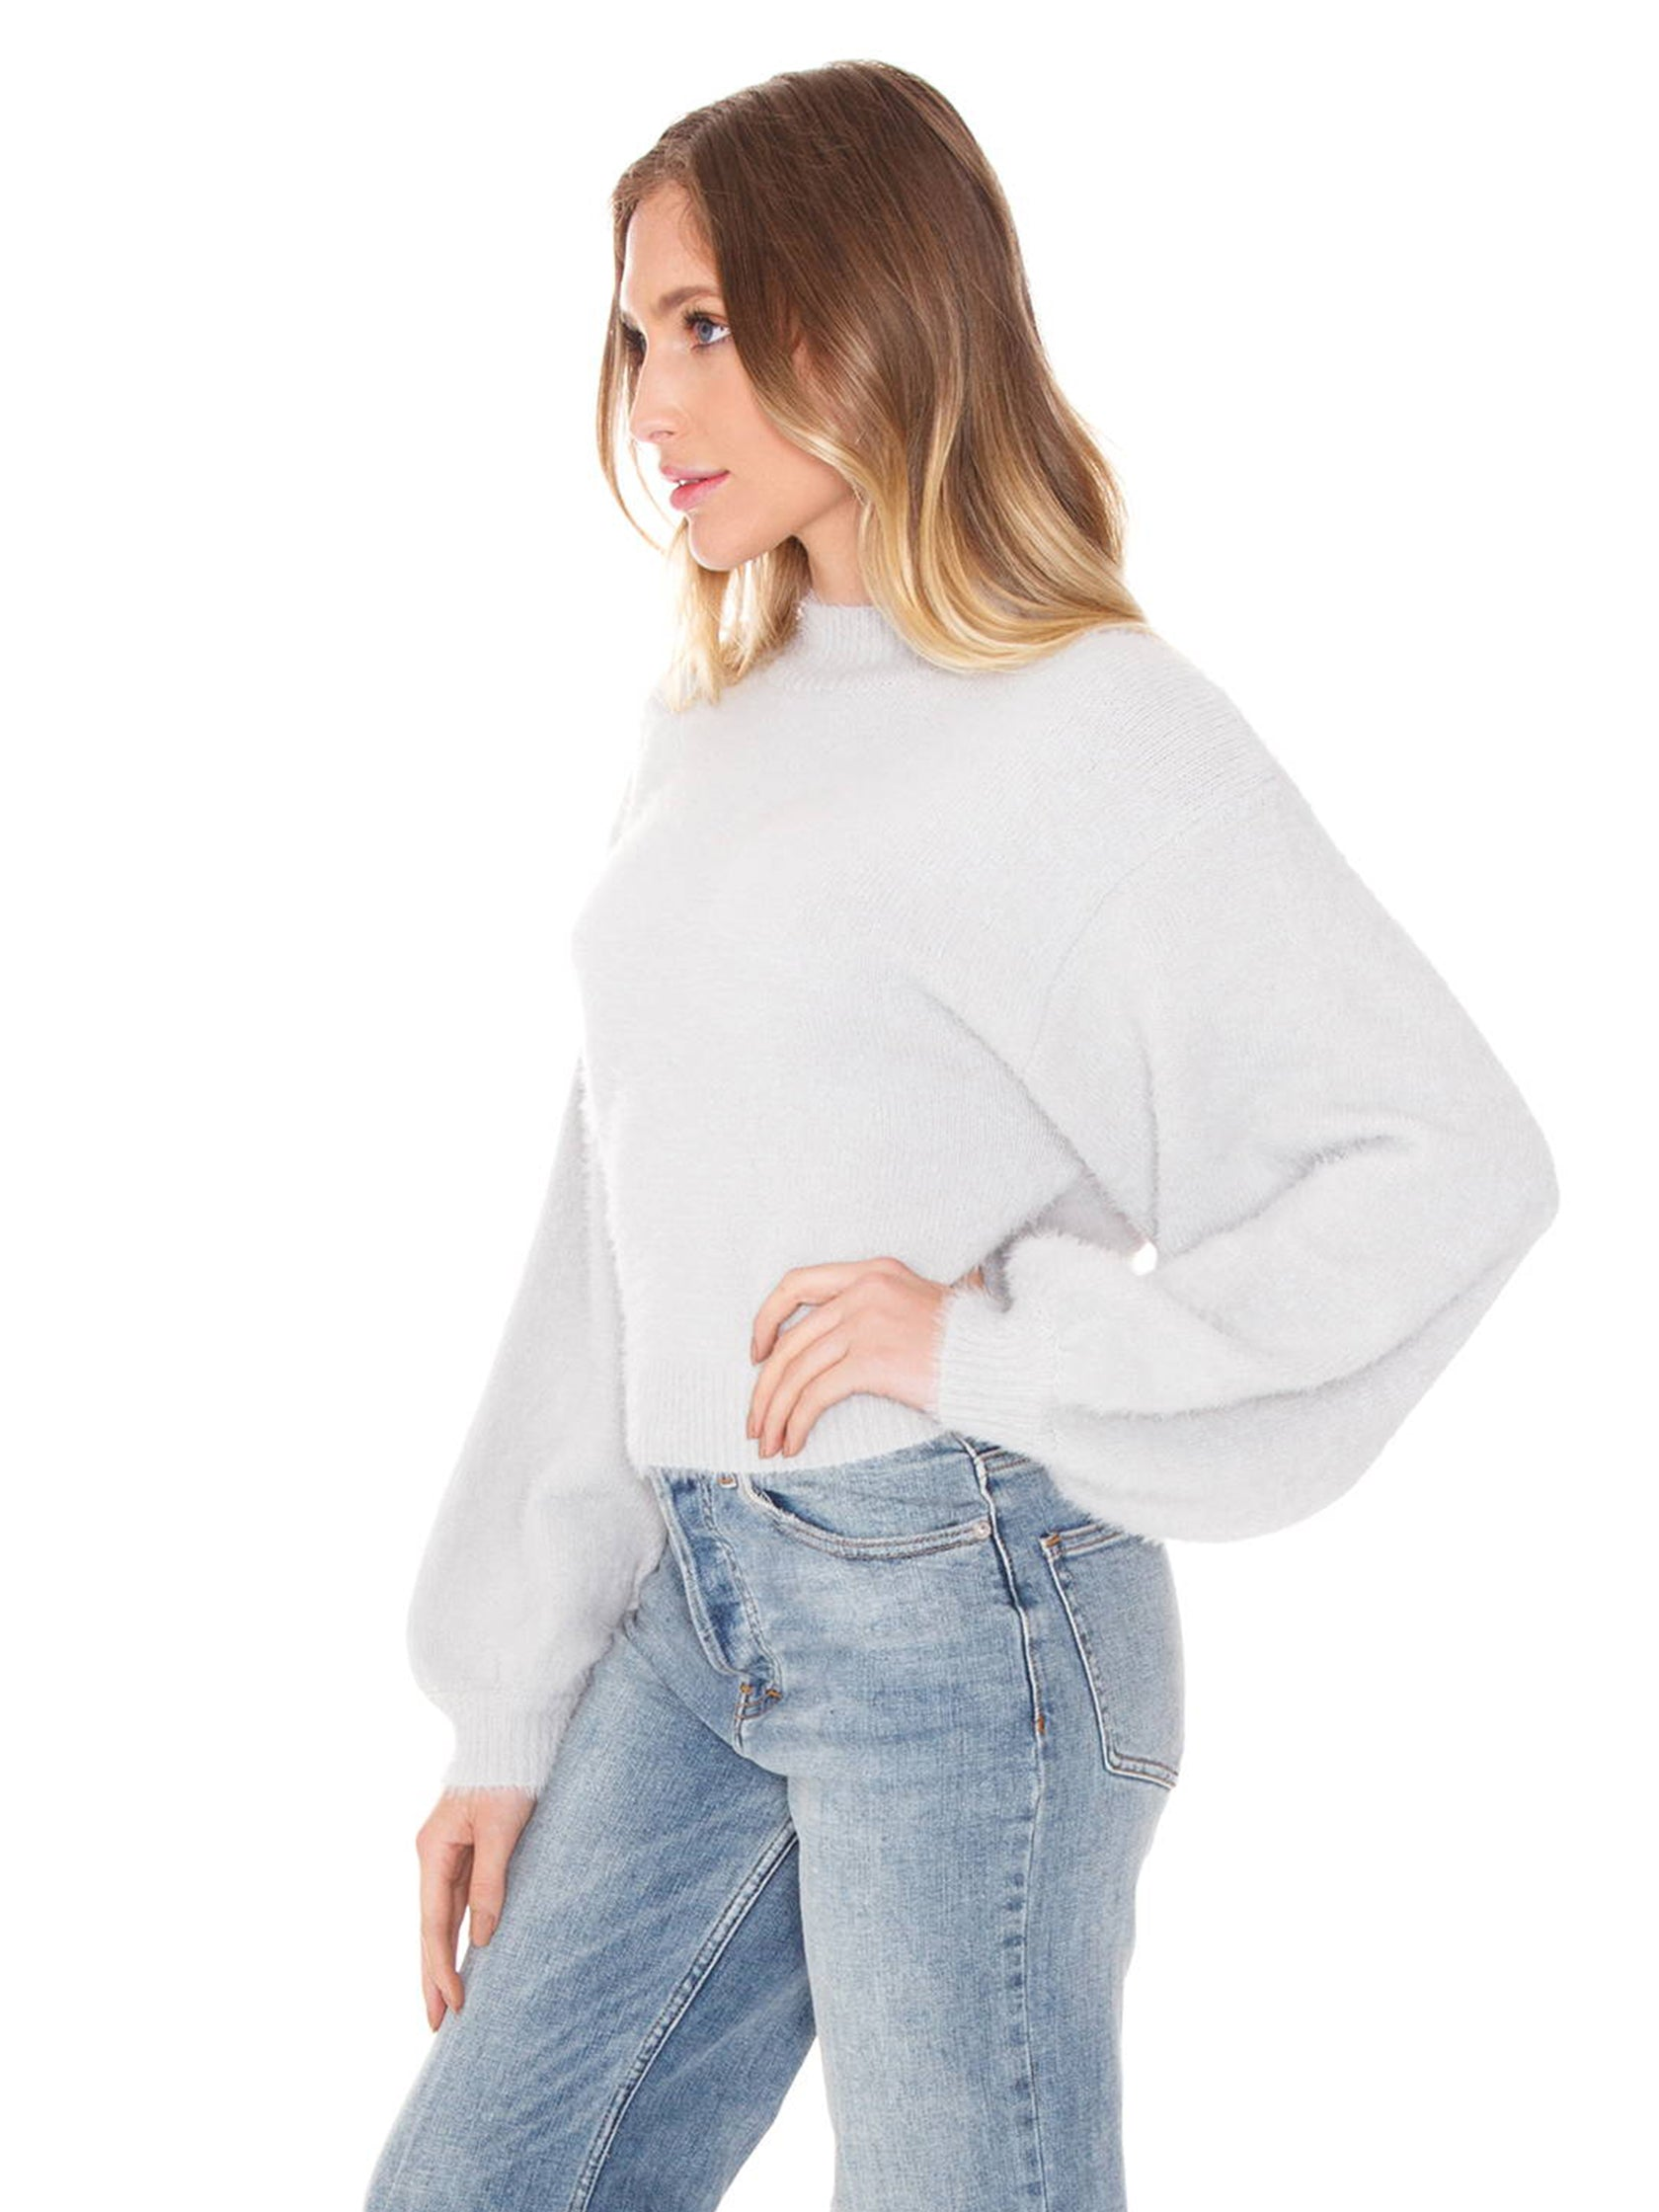 Women wearing a sweater rental from FashionPass called Nicole Sweater